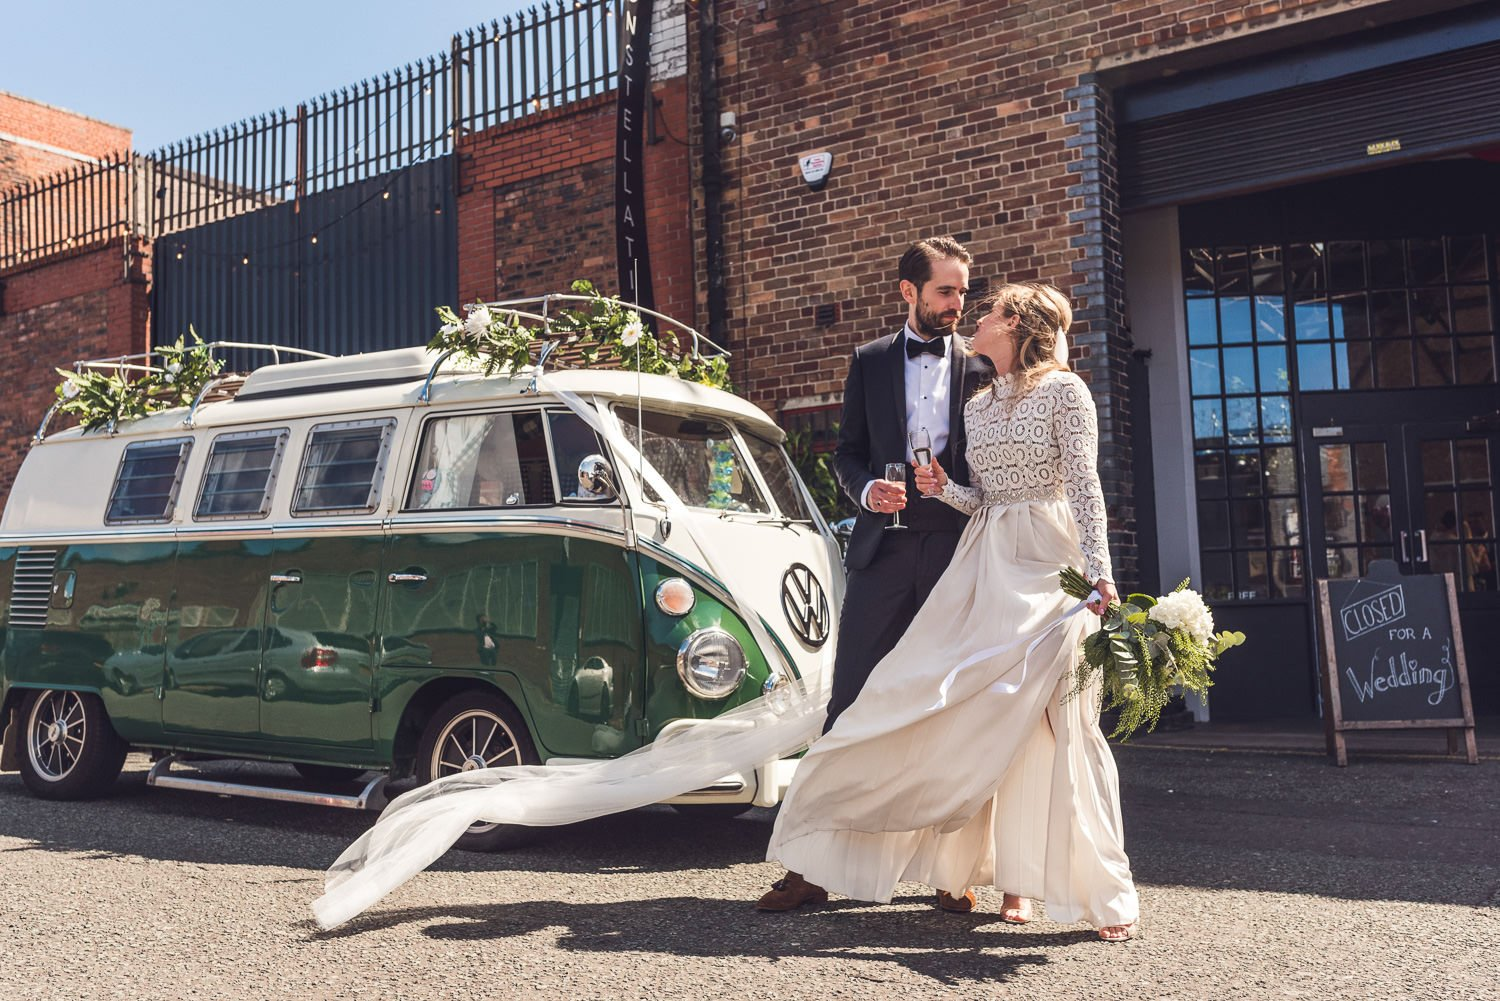 Bride and groom next to green WV camper van Constellations Liverpool